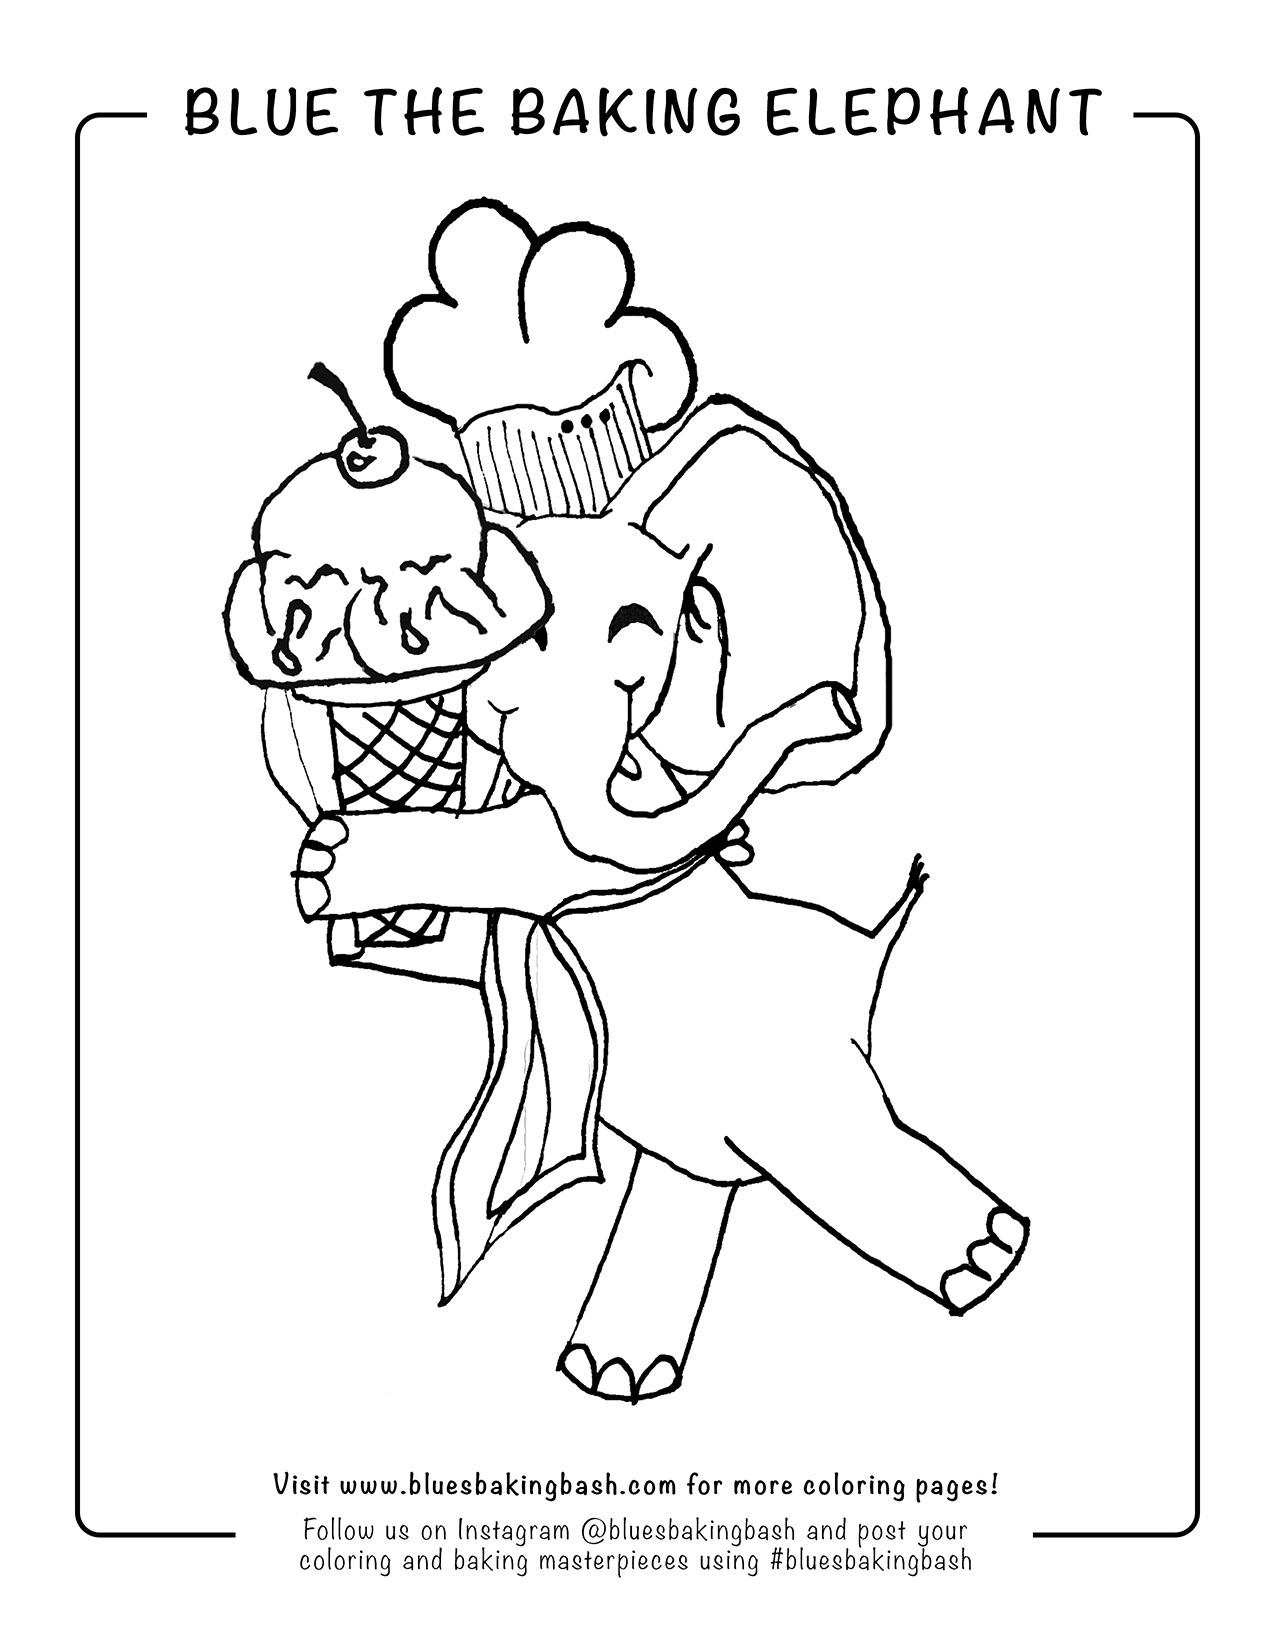 Blue The Baking Elephant Loves Ice Cream